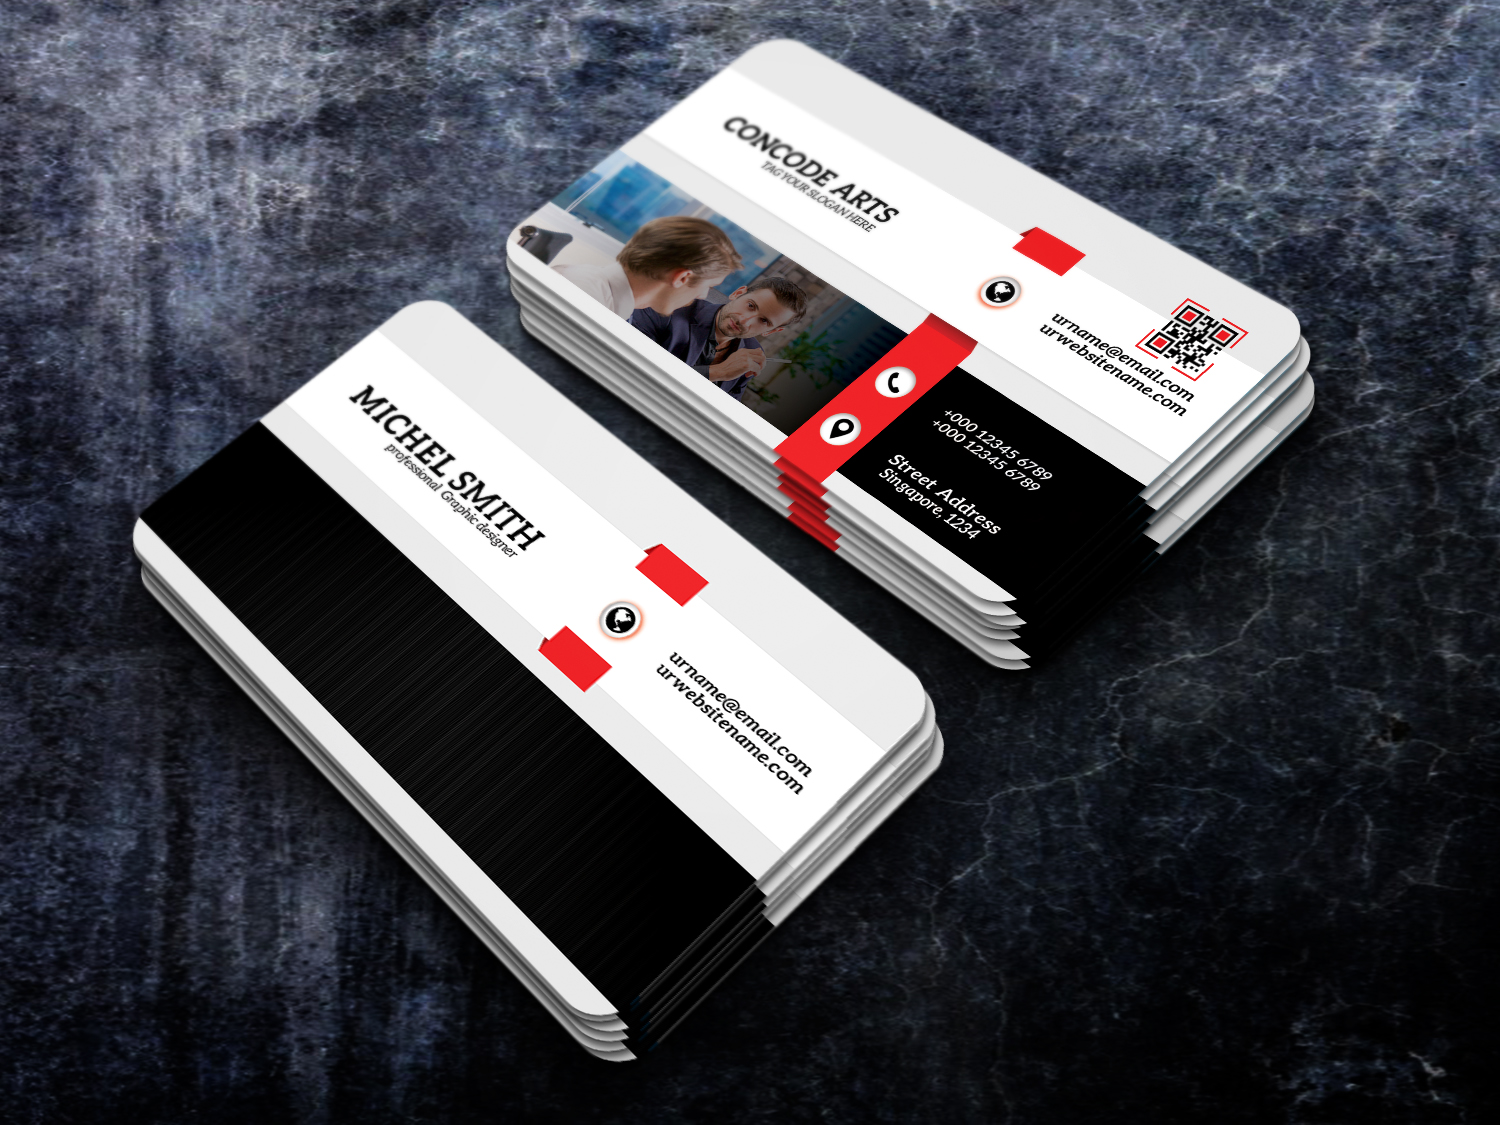 Grabs Full Pixels » Free download professional business card vol 94 zip   professional     free download professional business cards  This is a Business Card   This  template download contains 300 DPI  Print Ready  CMYK  Layerd PSD files